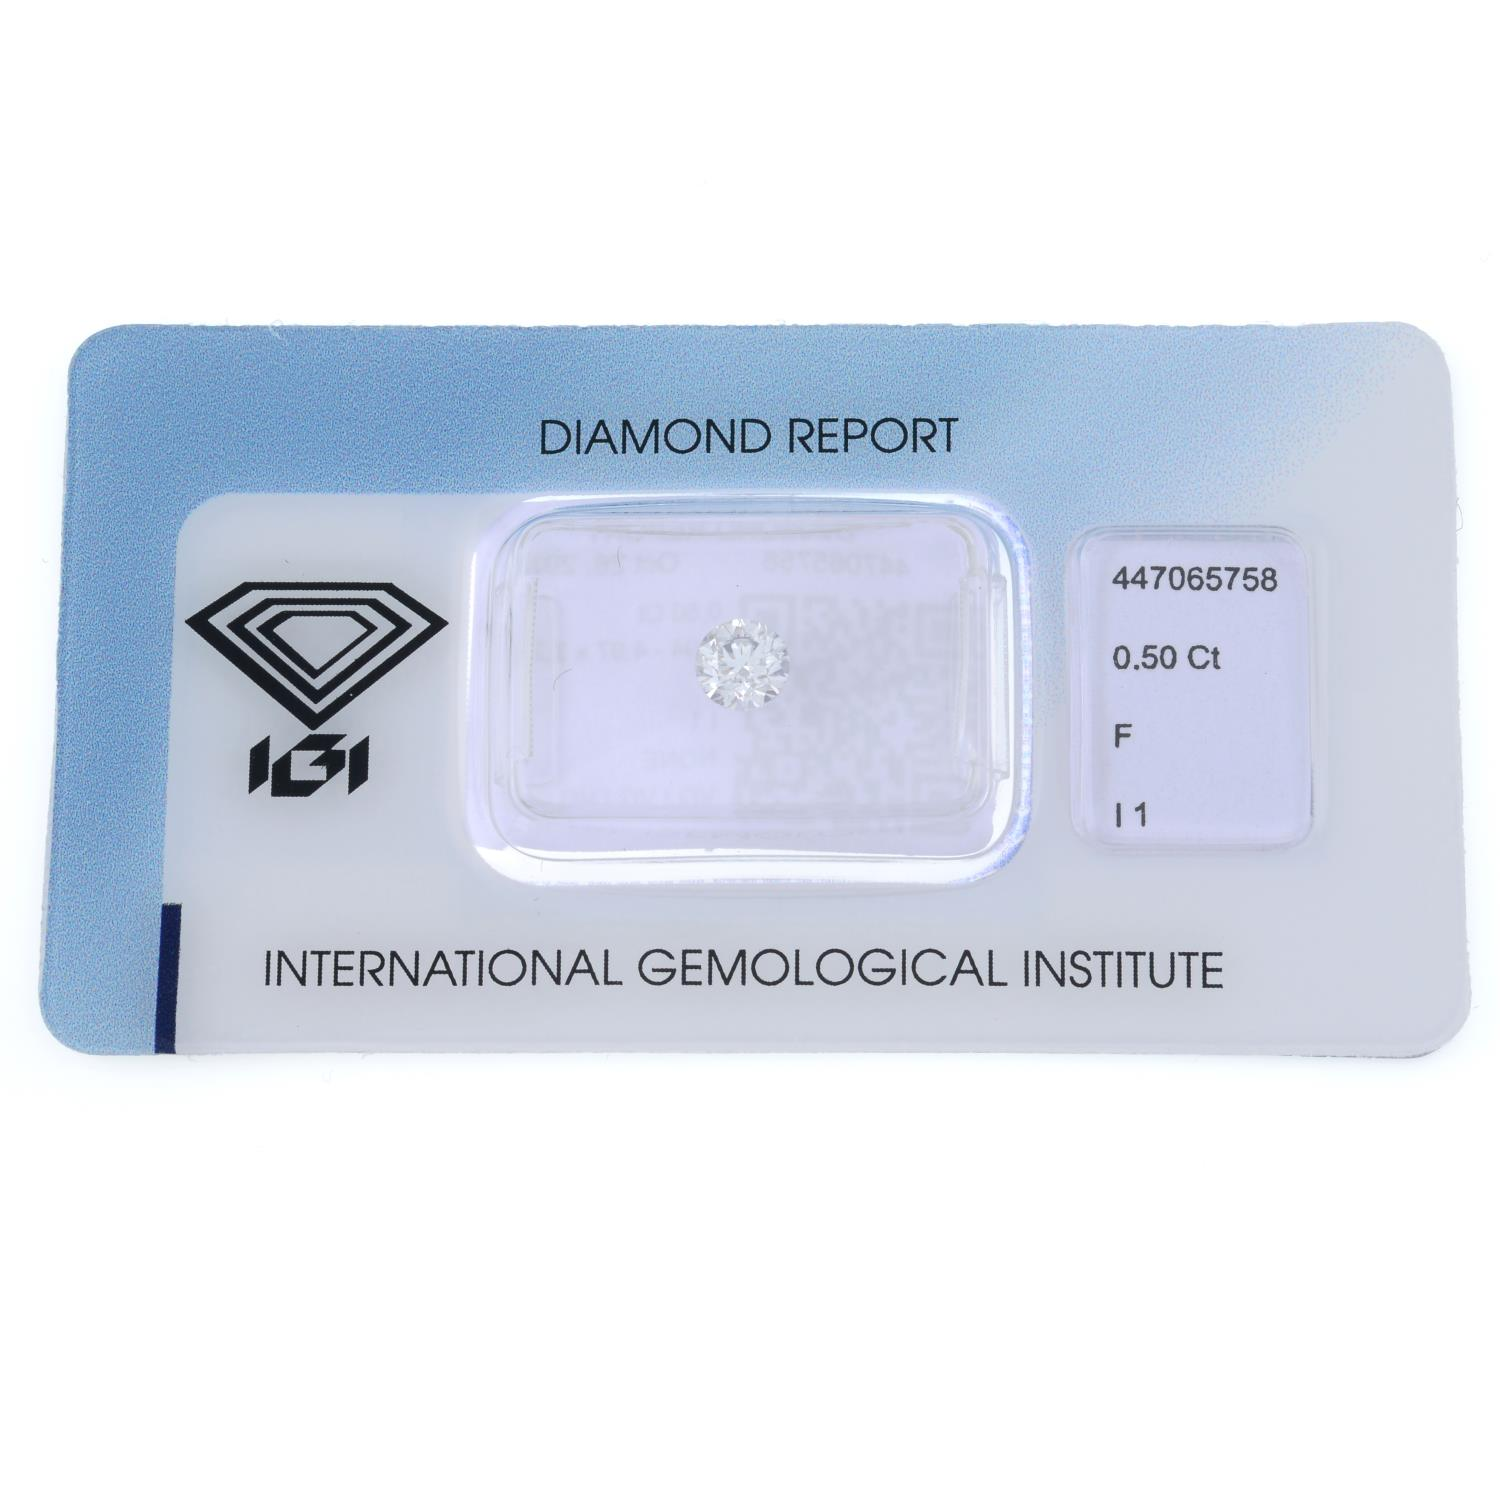 A brilliant cut diamond, weighing 0.50ct, measuring 4.94 by 4.97 by 3.2mms. - Image 2 of 4